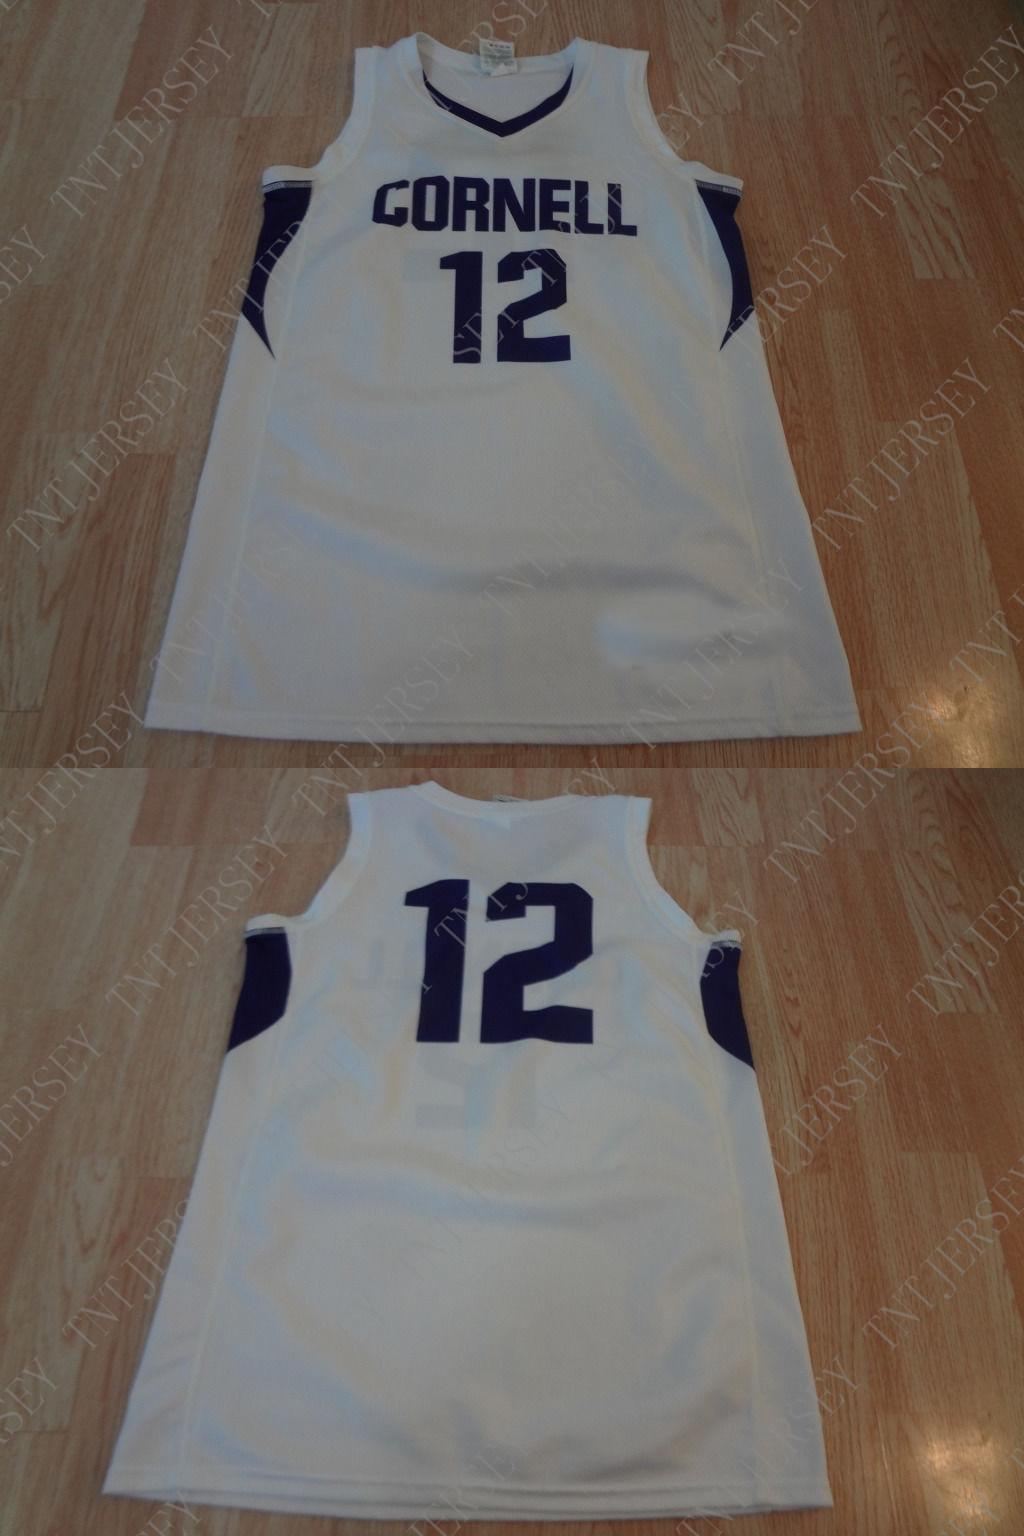 4cc9a4ac5 2019 Cheap Custom Cornell College #12 Basketball Jersey White Jersey  Stitched Customize Any Number Name MEN WOMEN YOUTH XS 5XL From Tntjersey,  ...